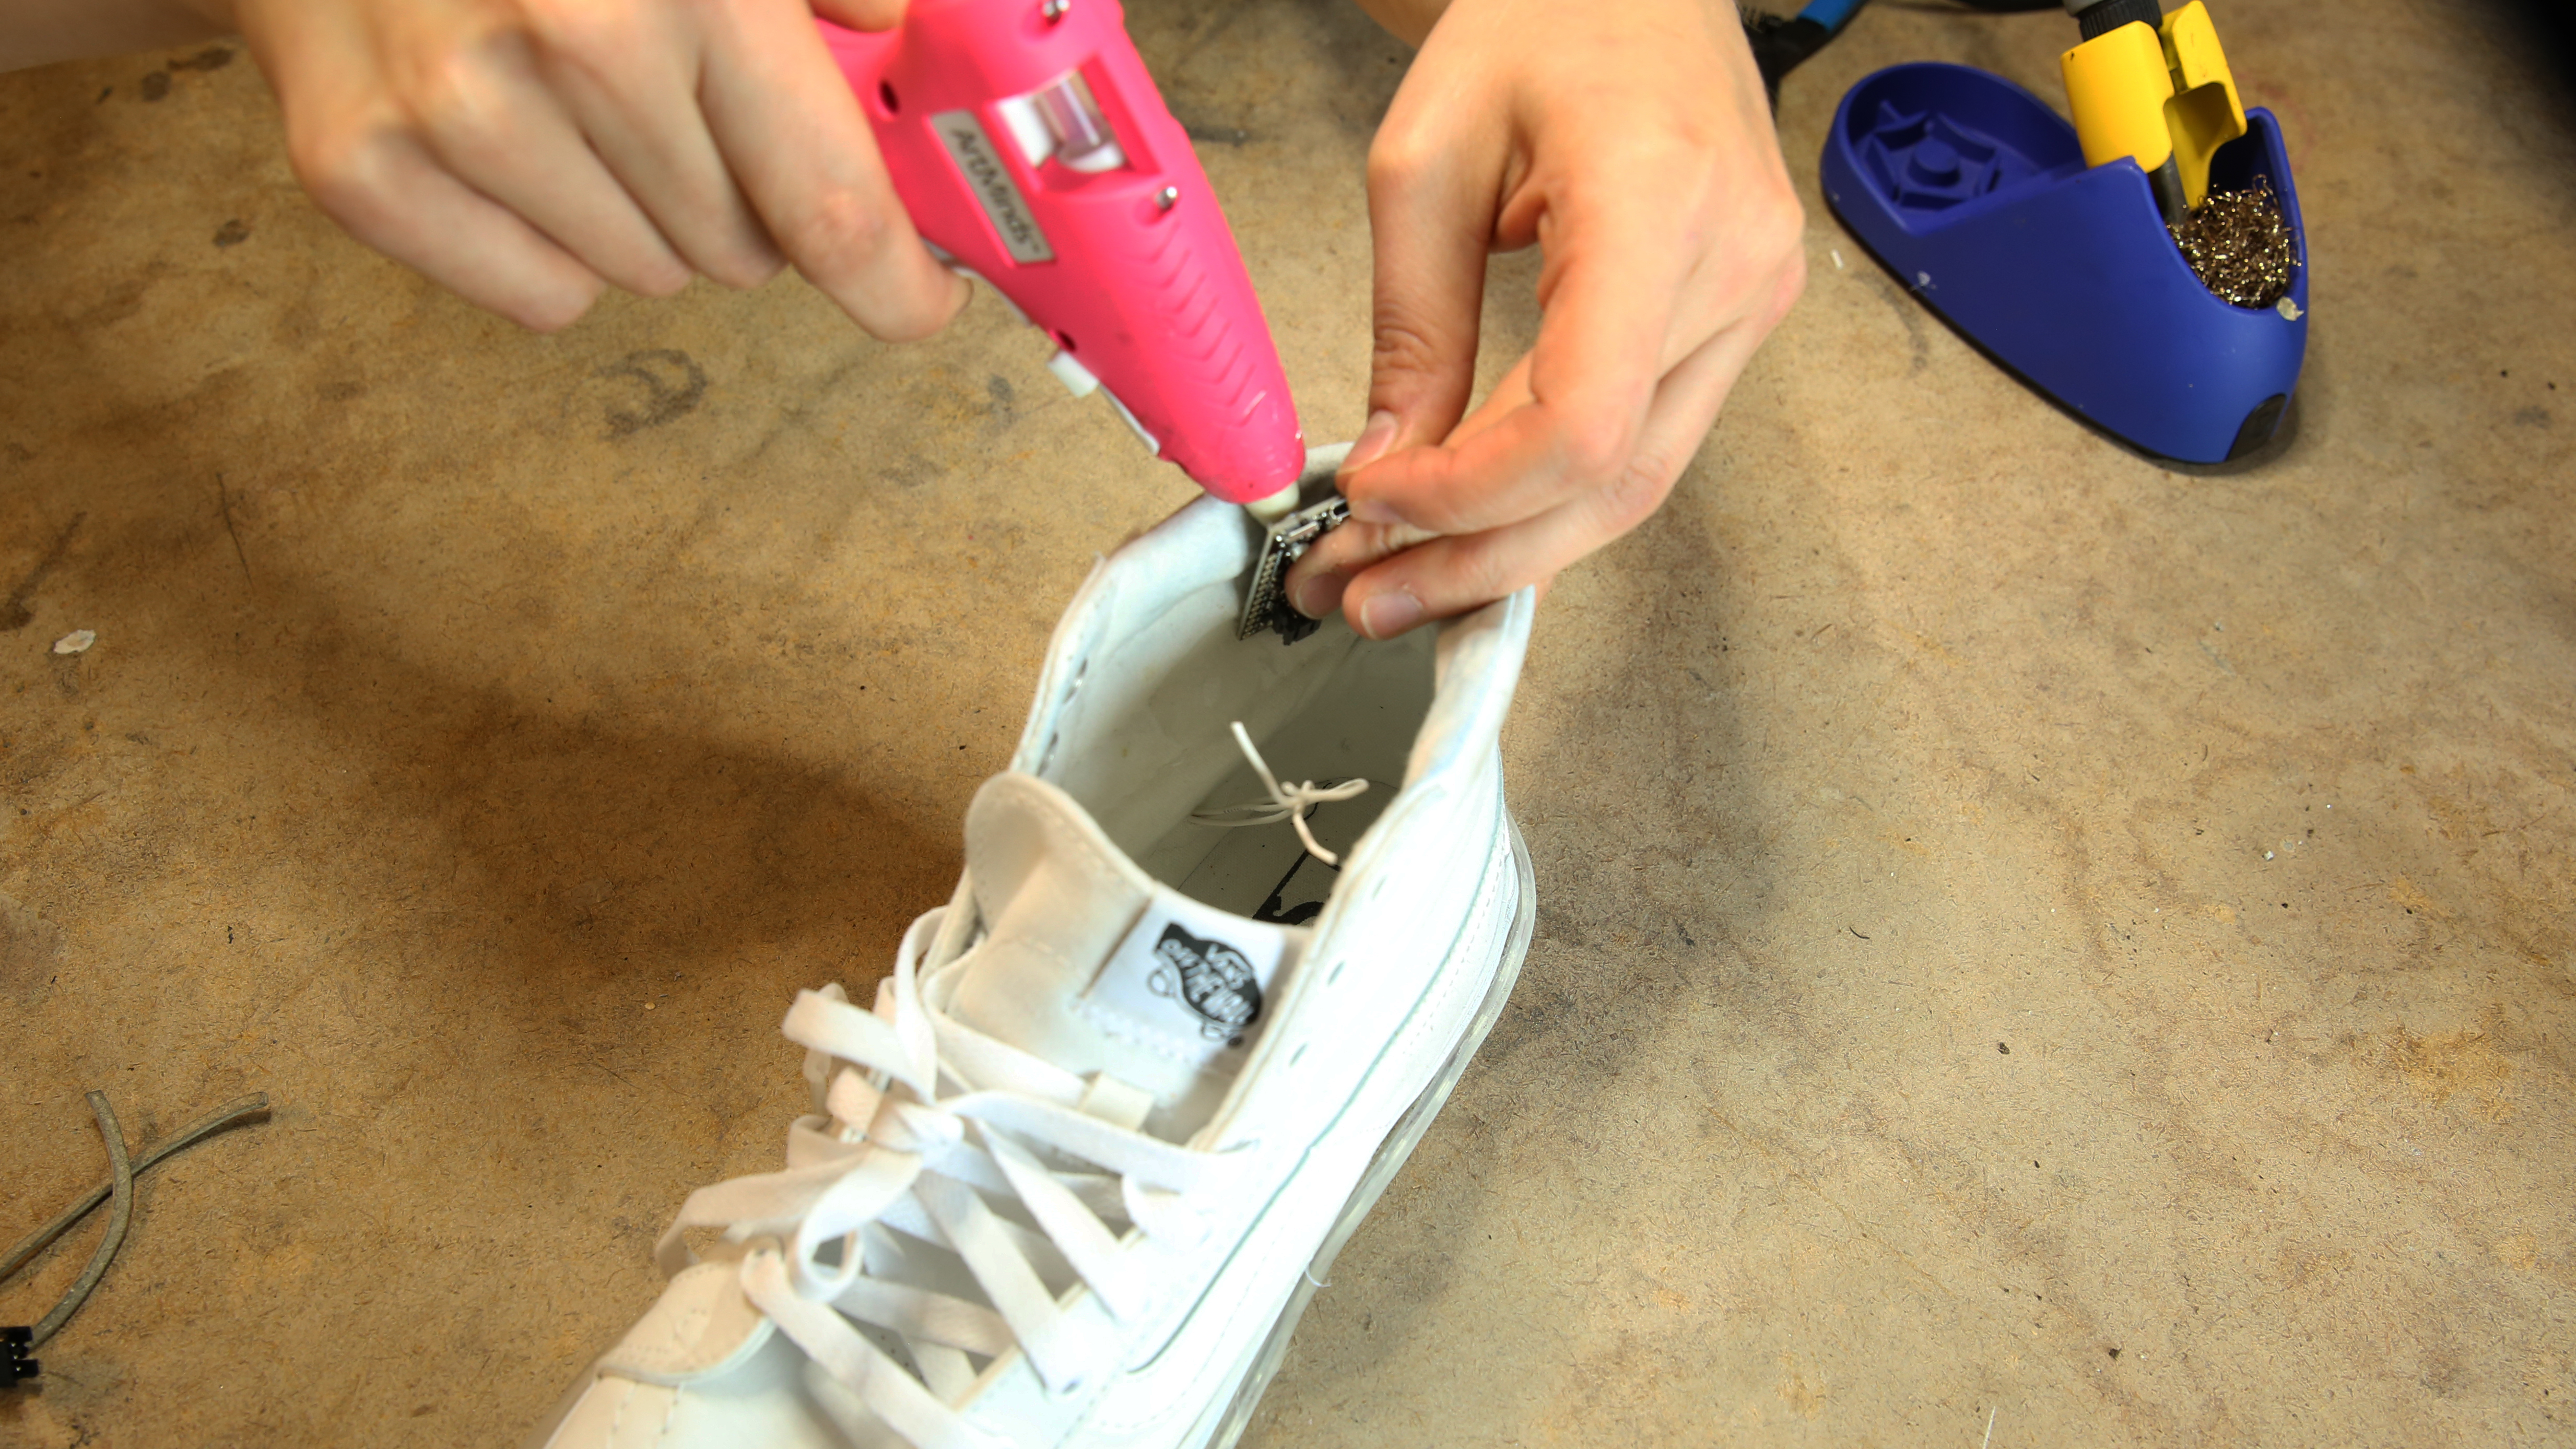 diy light-up shoes - learn.sparkfun